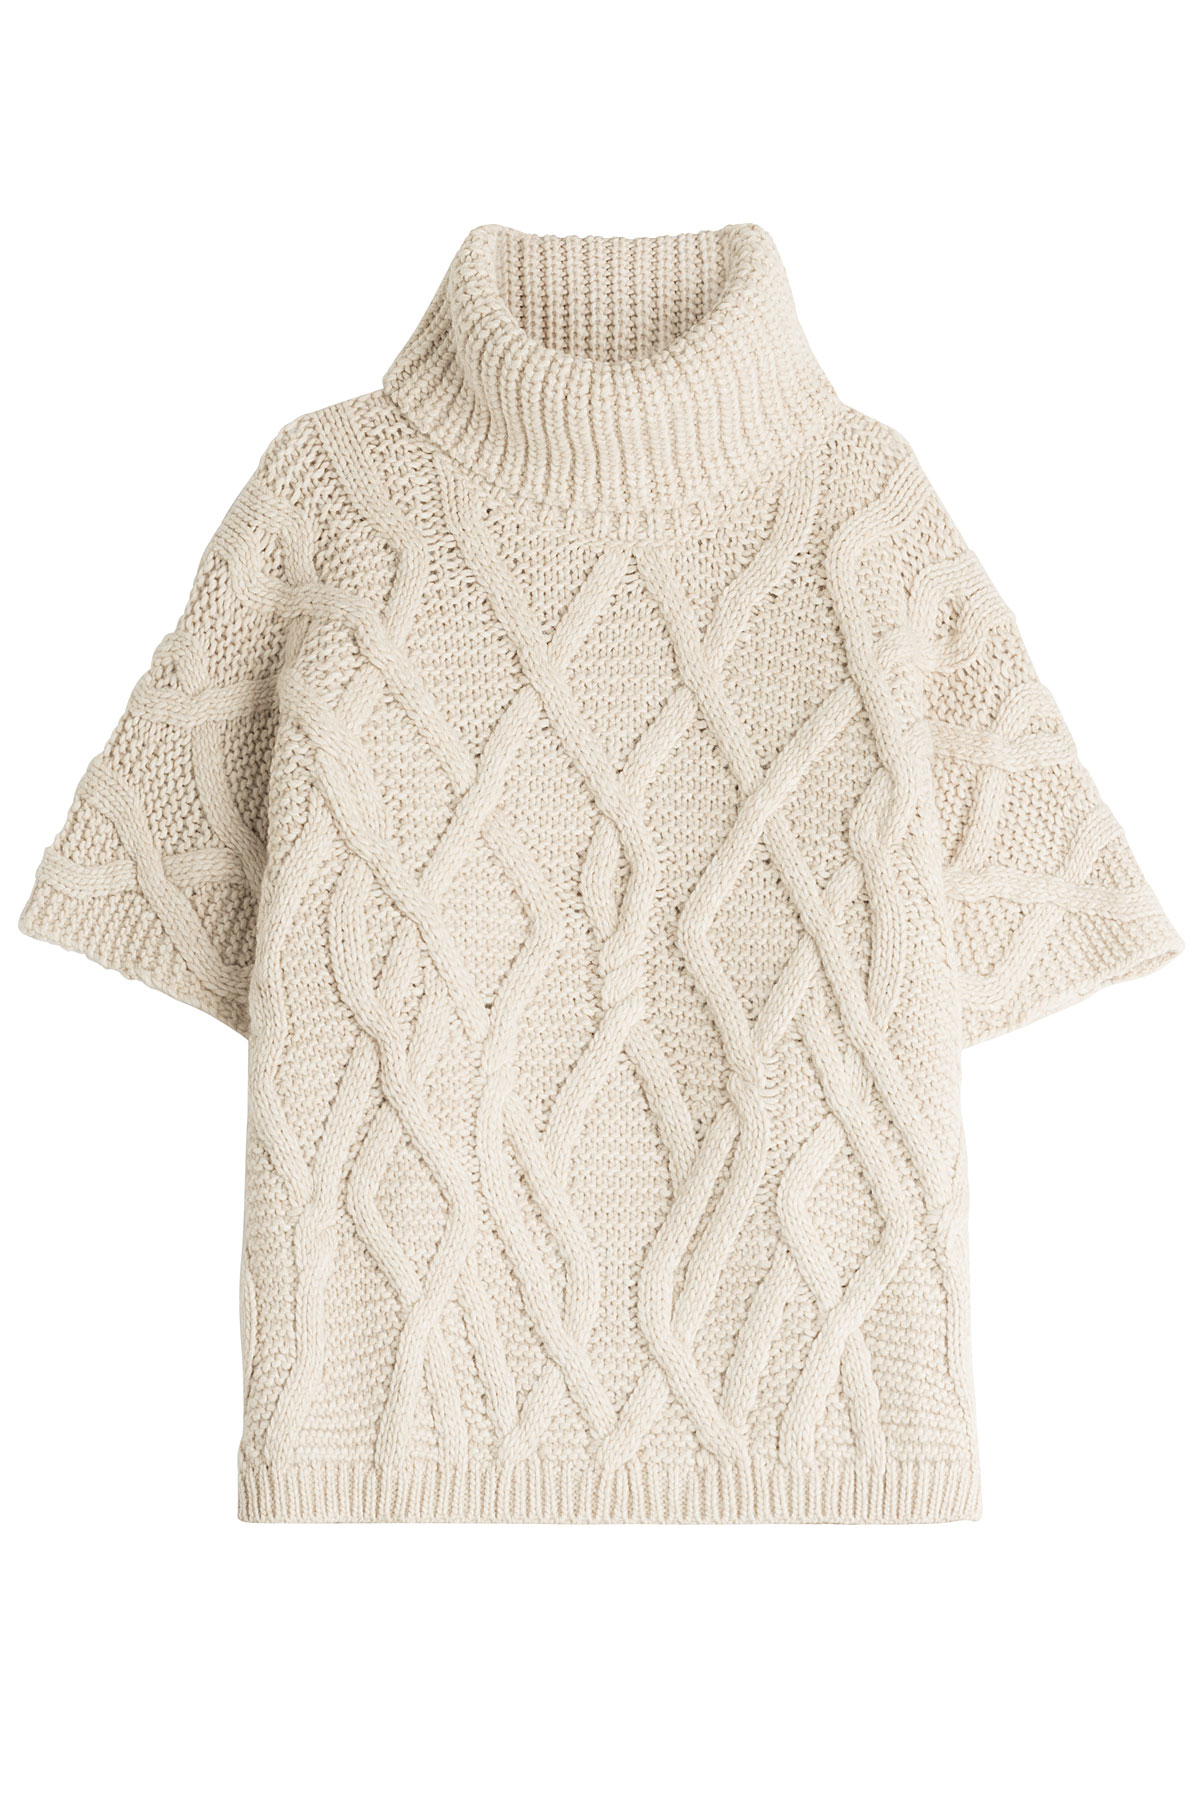 Wool Cape Knitting Pattern : Woolrich Knit Cape With Wool And Alpaca - Beige in White Lyst